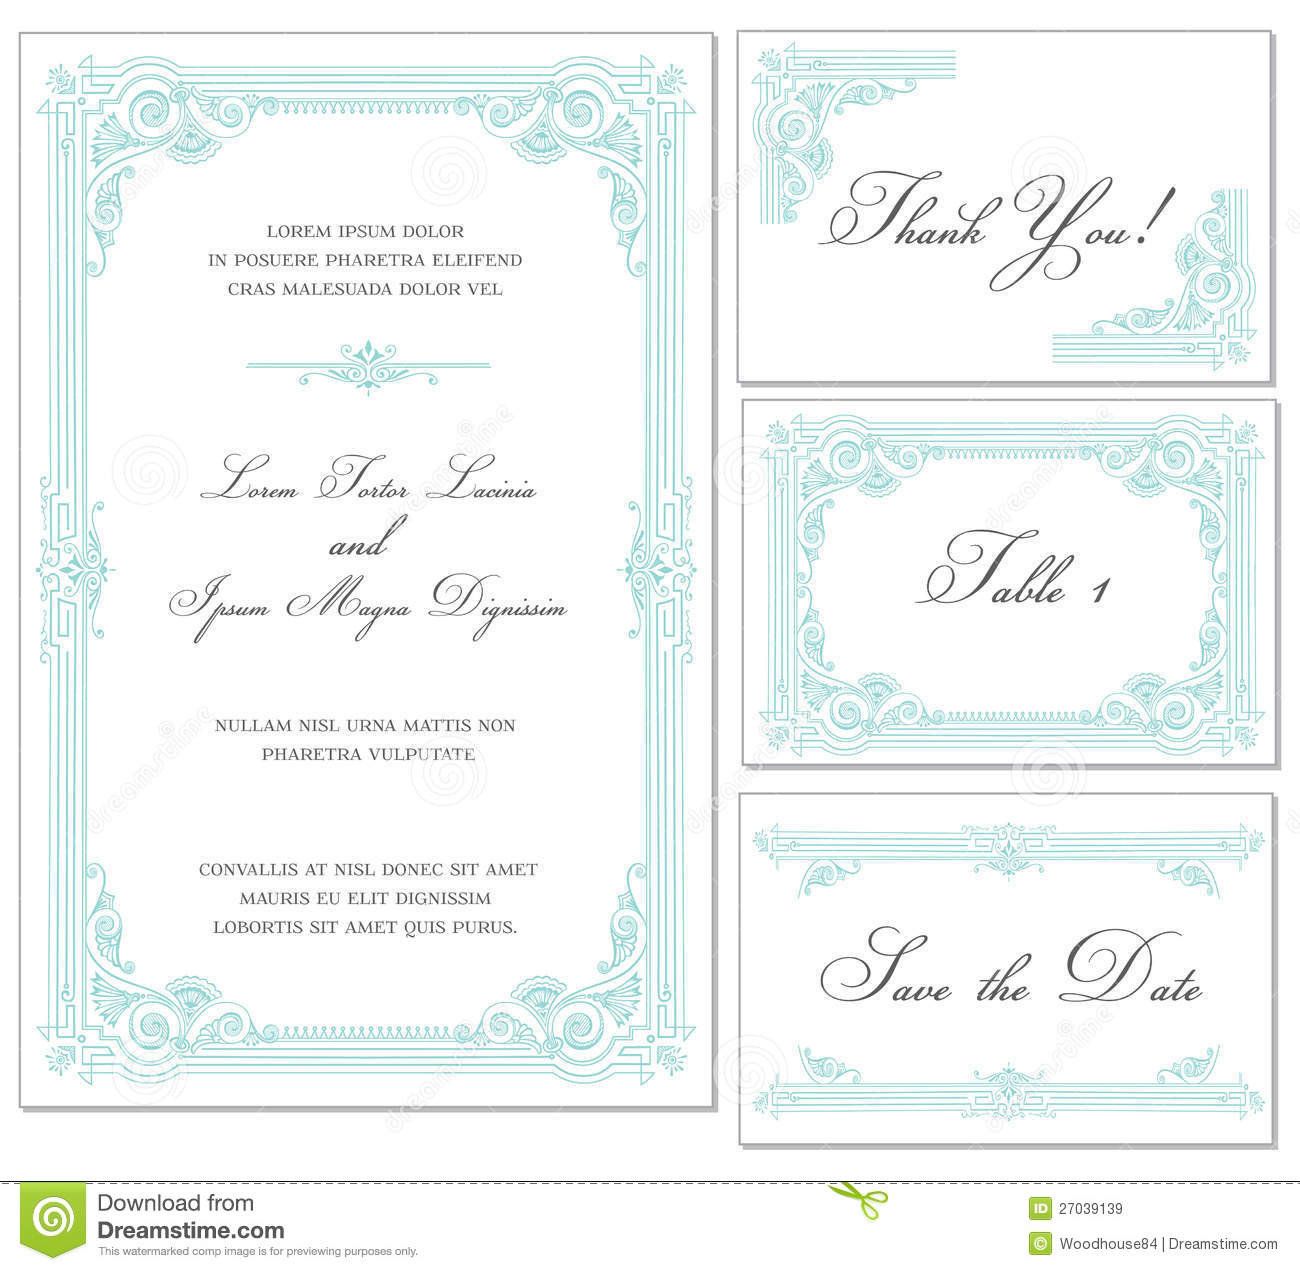 Wedding Invitations Prices for best invitations layout